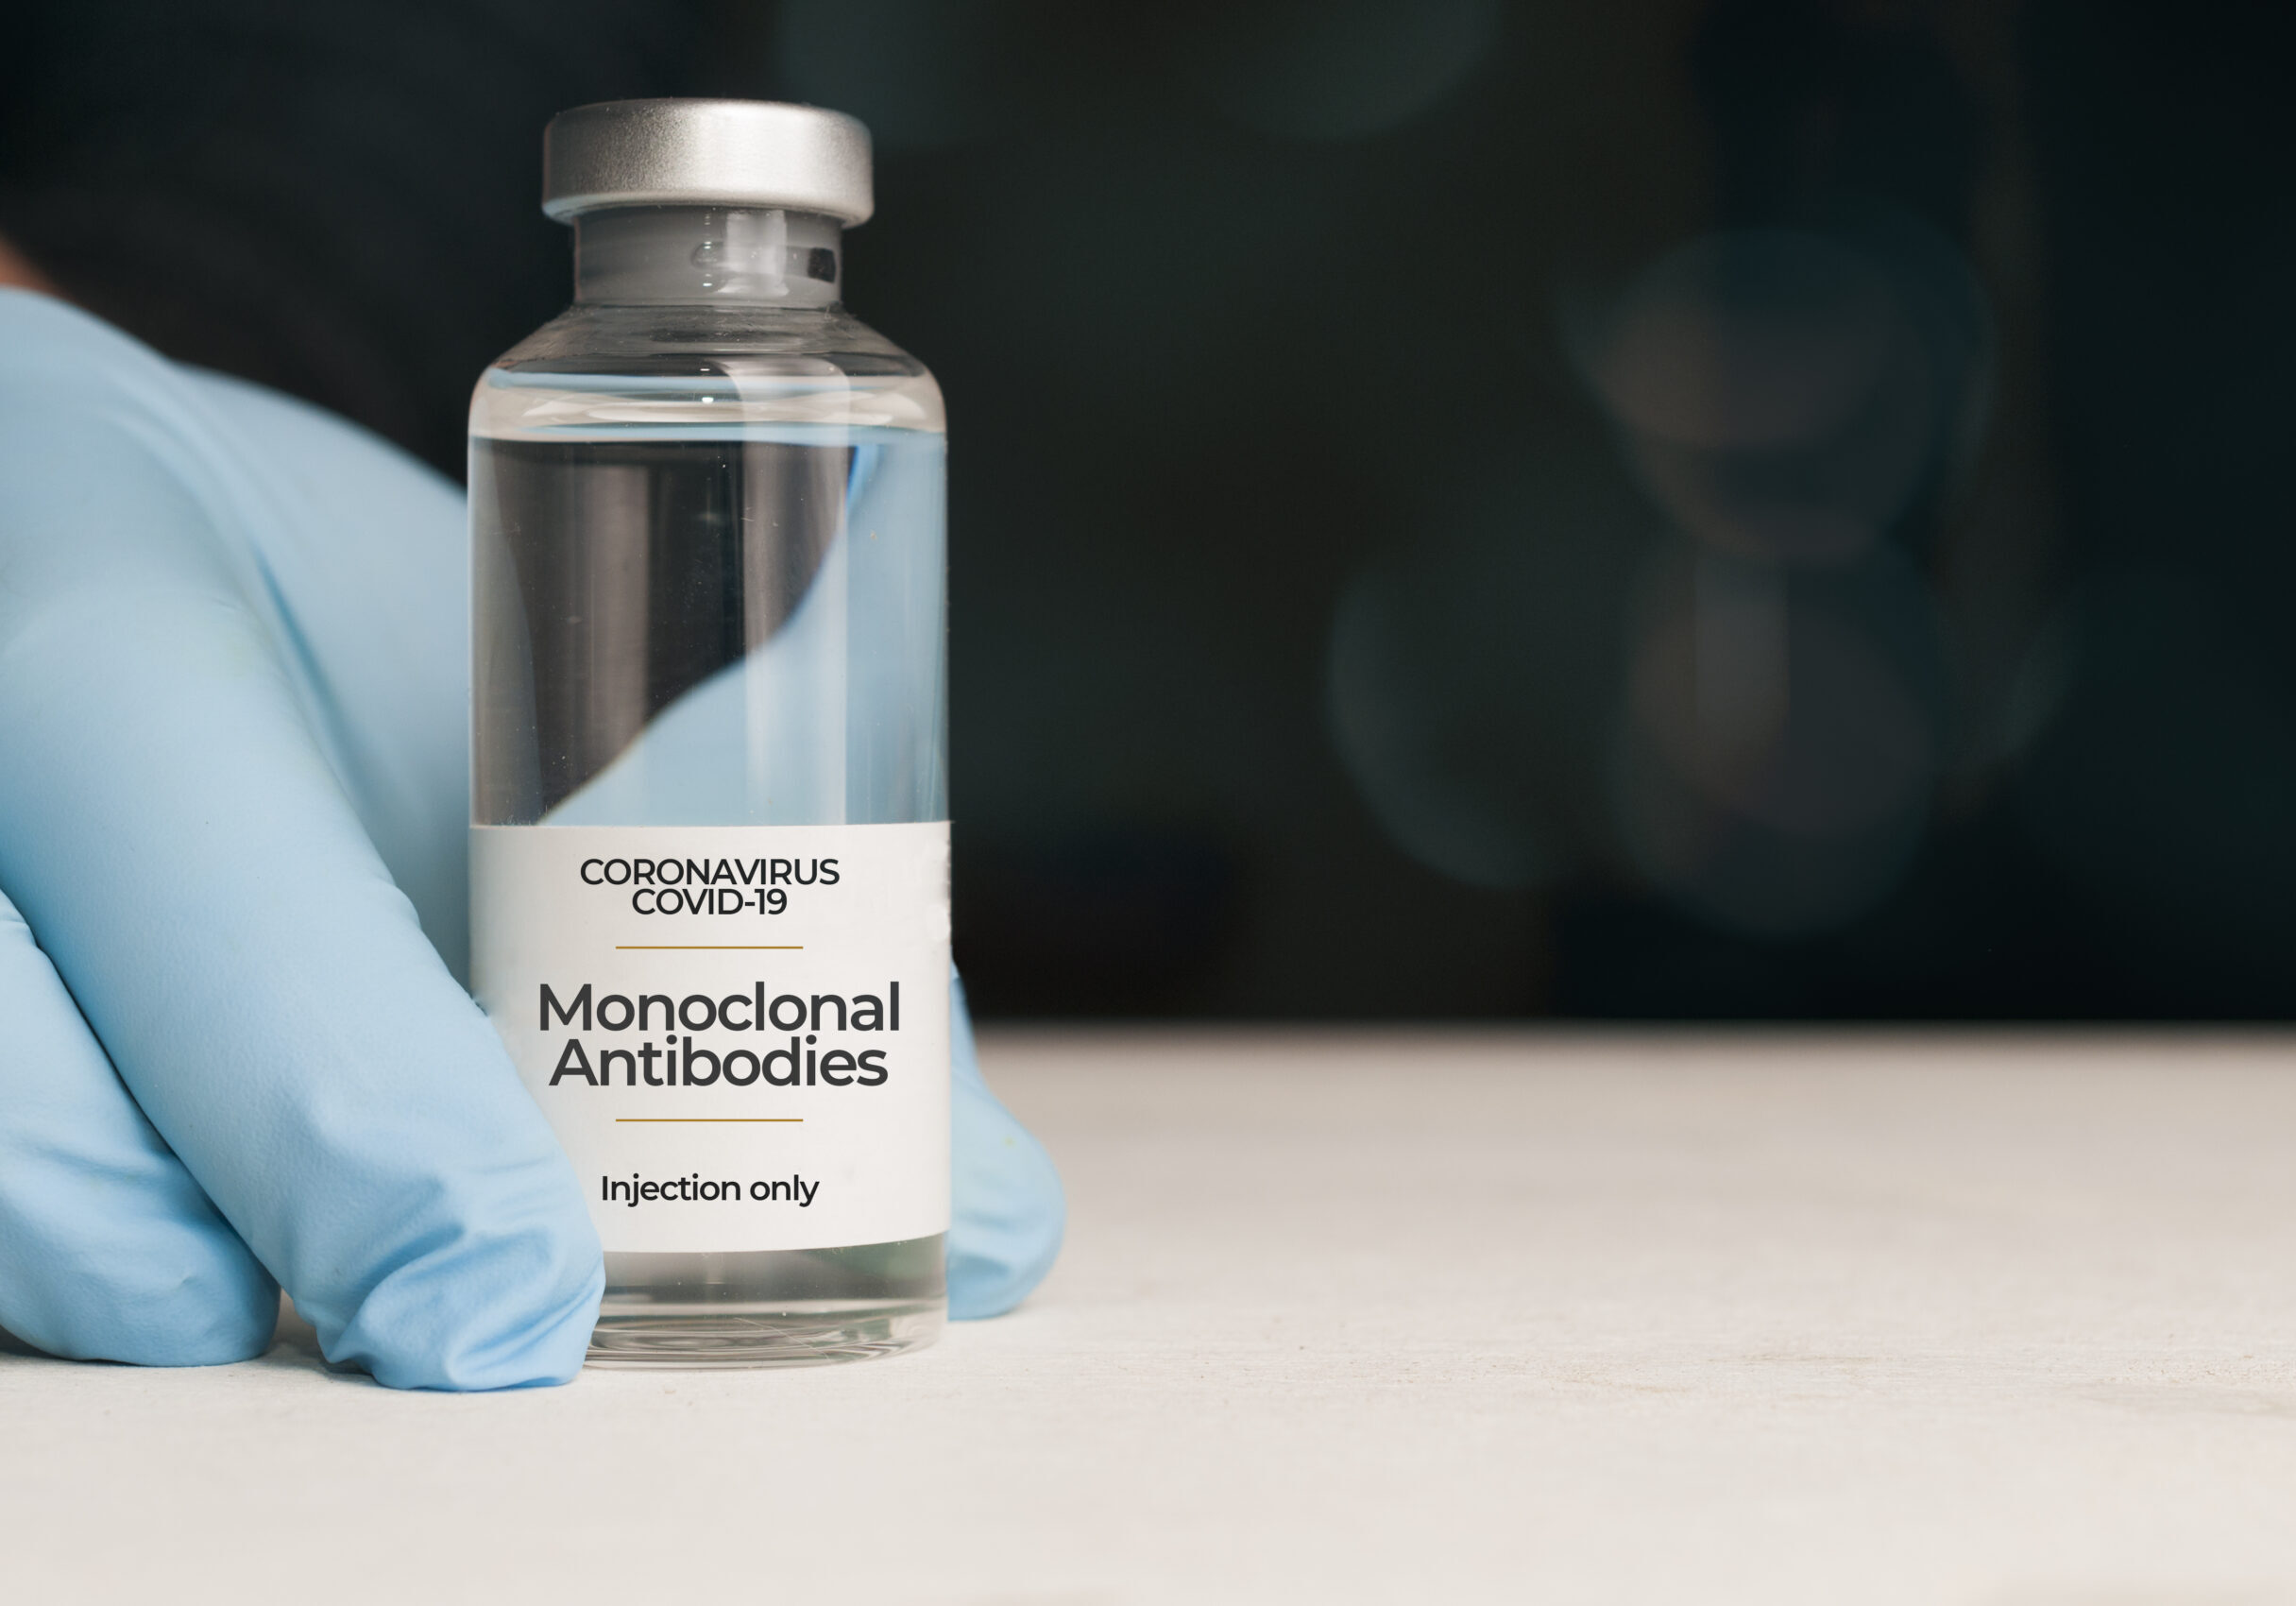 Doctor hold a vial of monoclonal antibodies , a new treatment for coronavirus Covid-19, on a white table